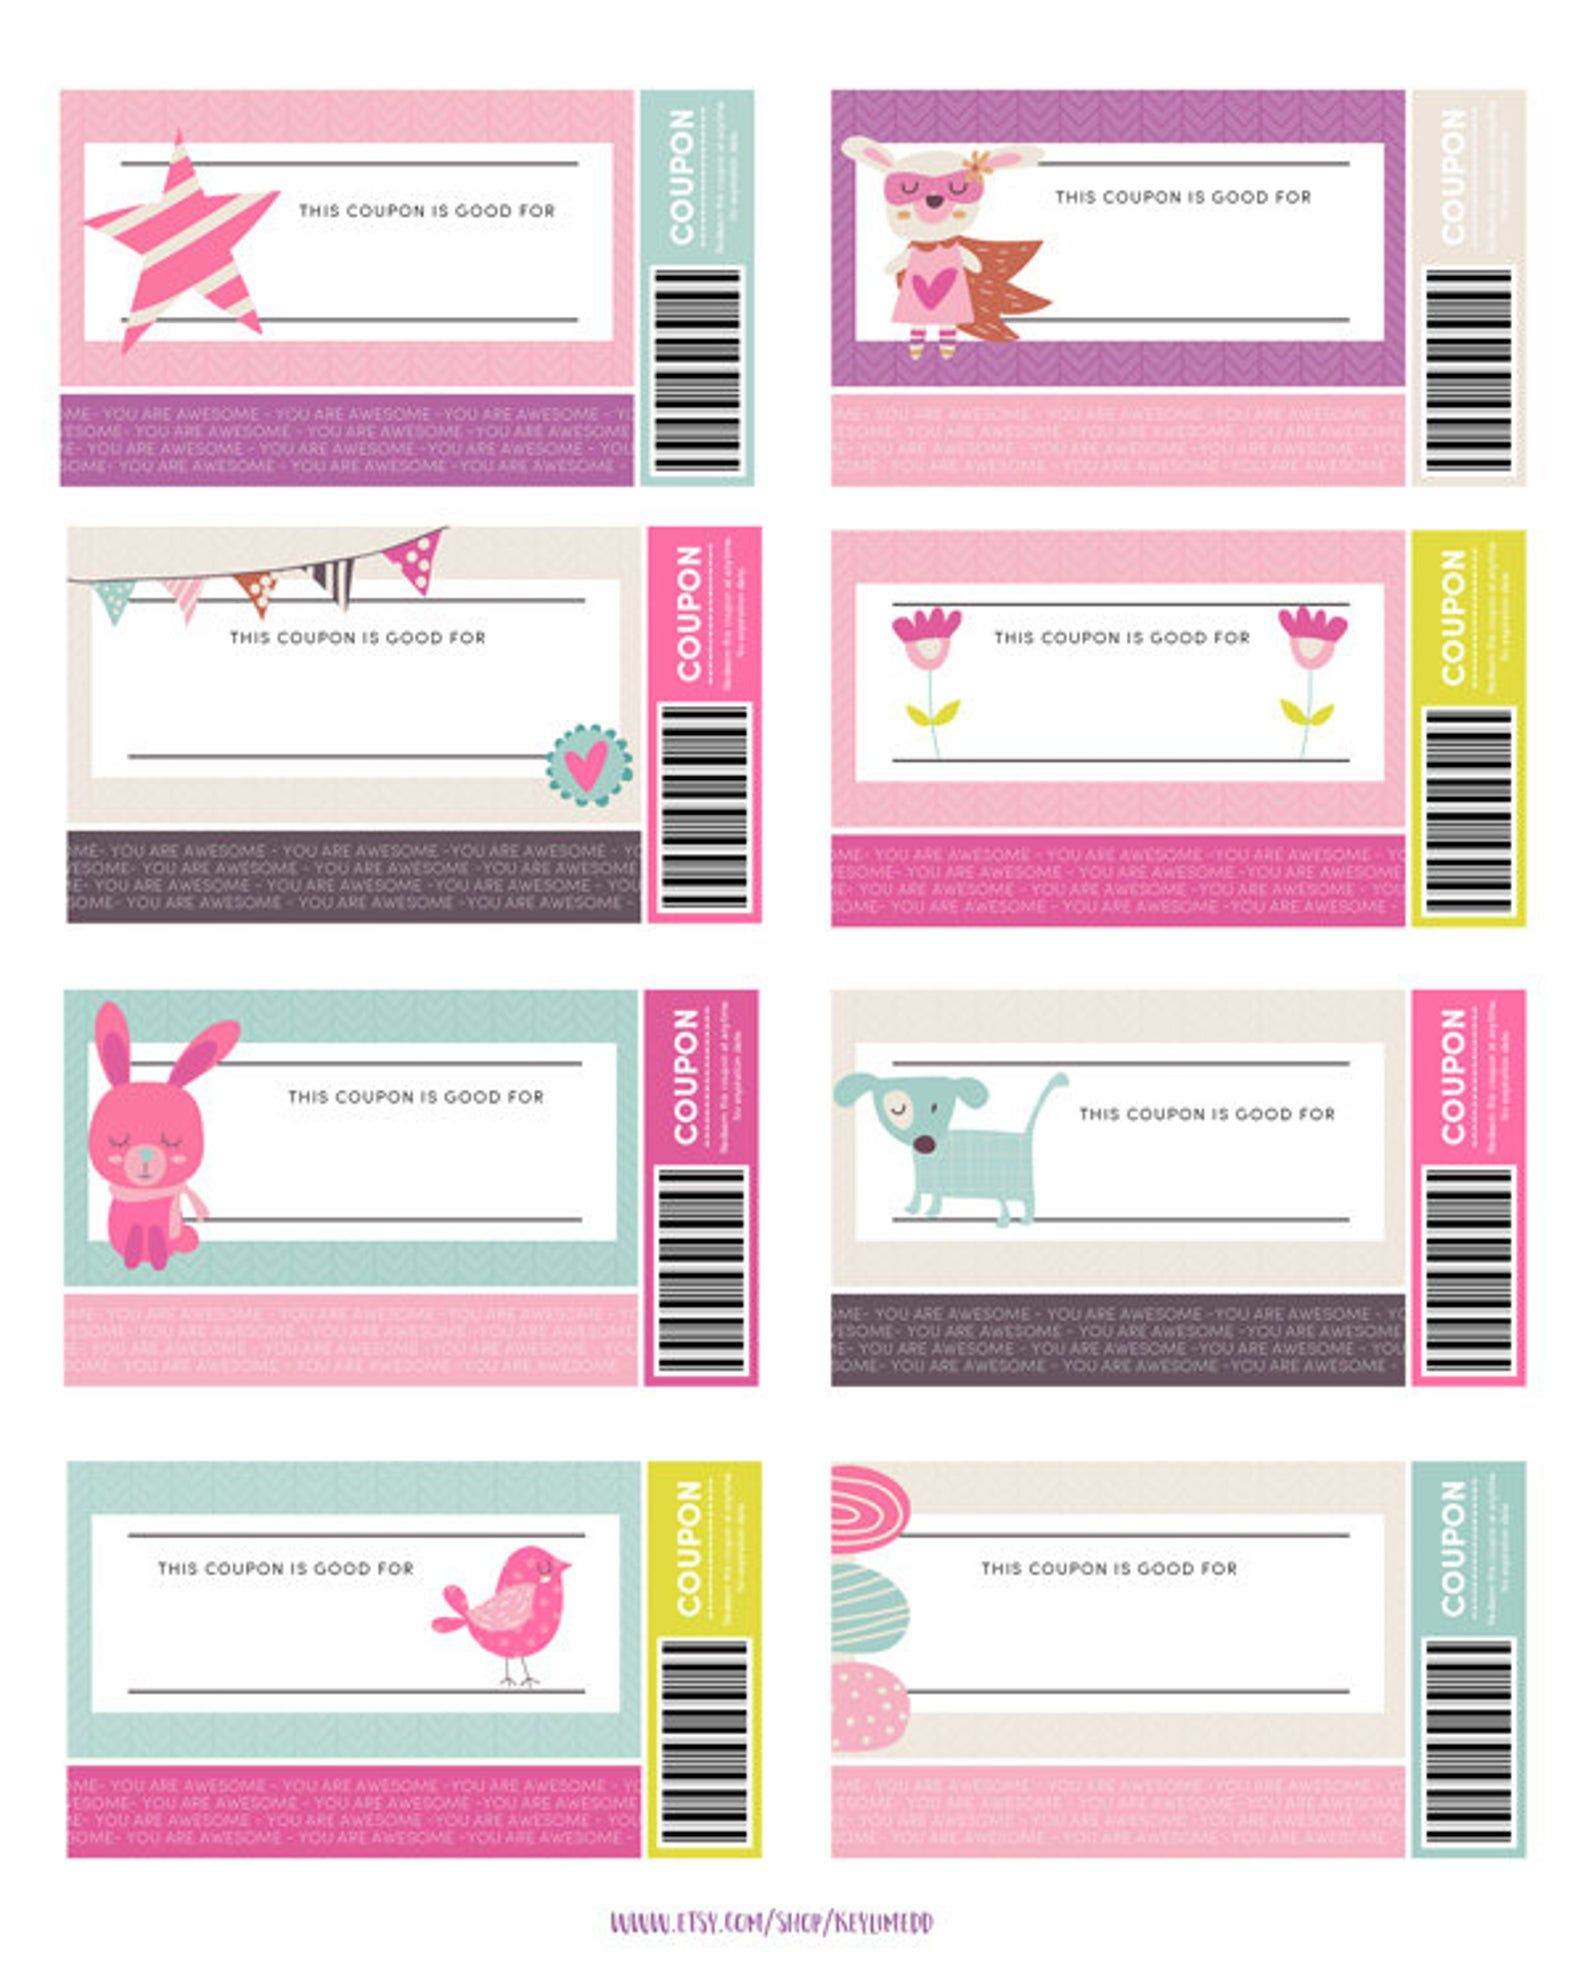 Kids Reward Coupons Love Coupons Instant Download | Etsy